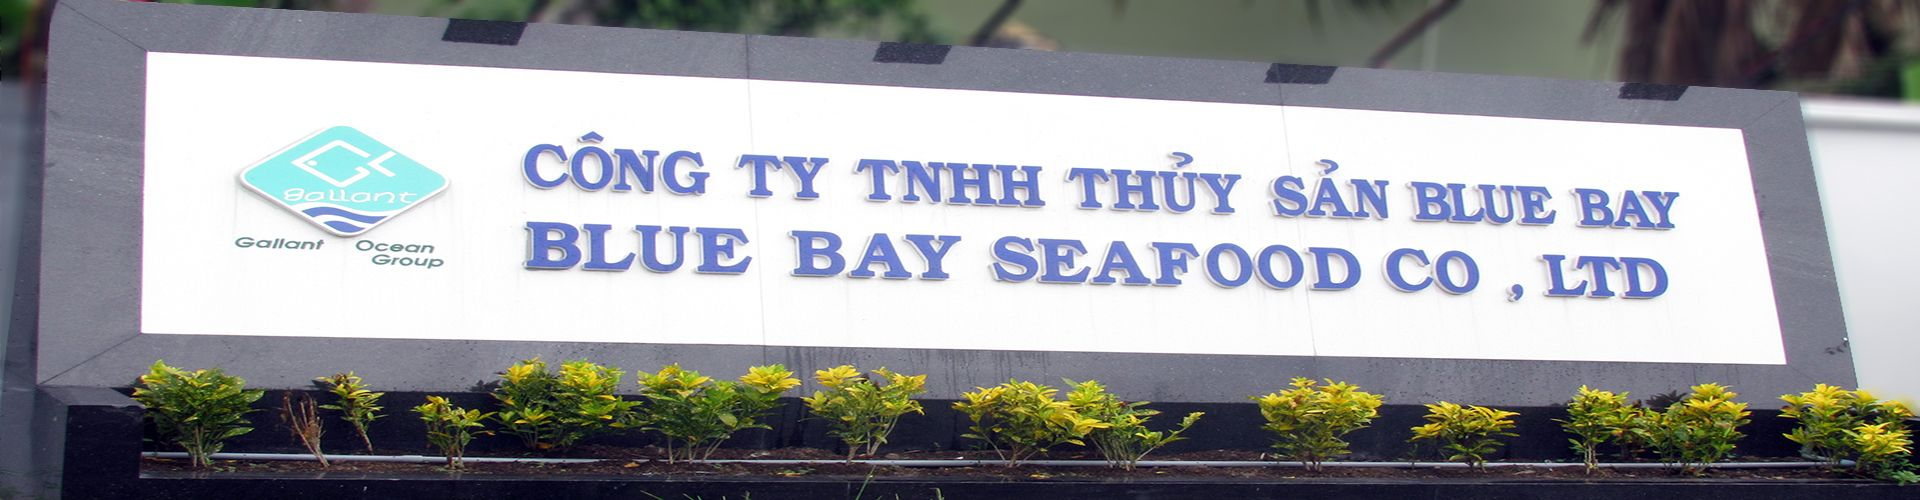 CTY TNHH Blue Bay Seafood